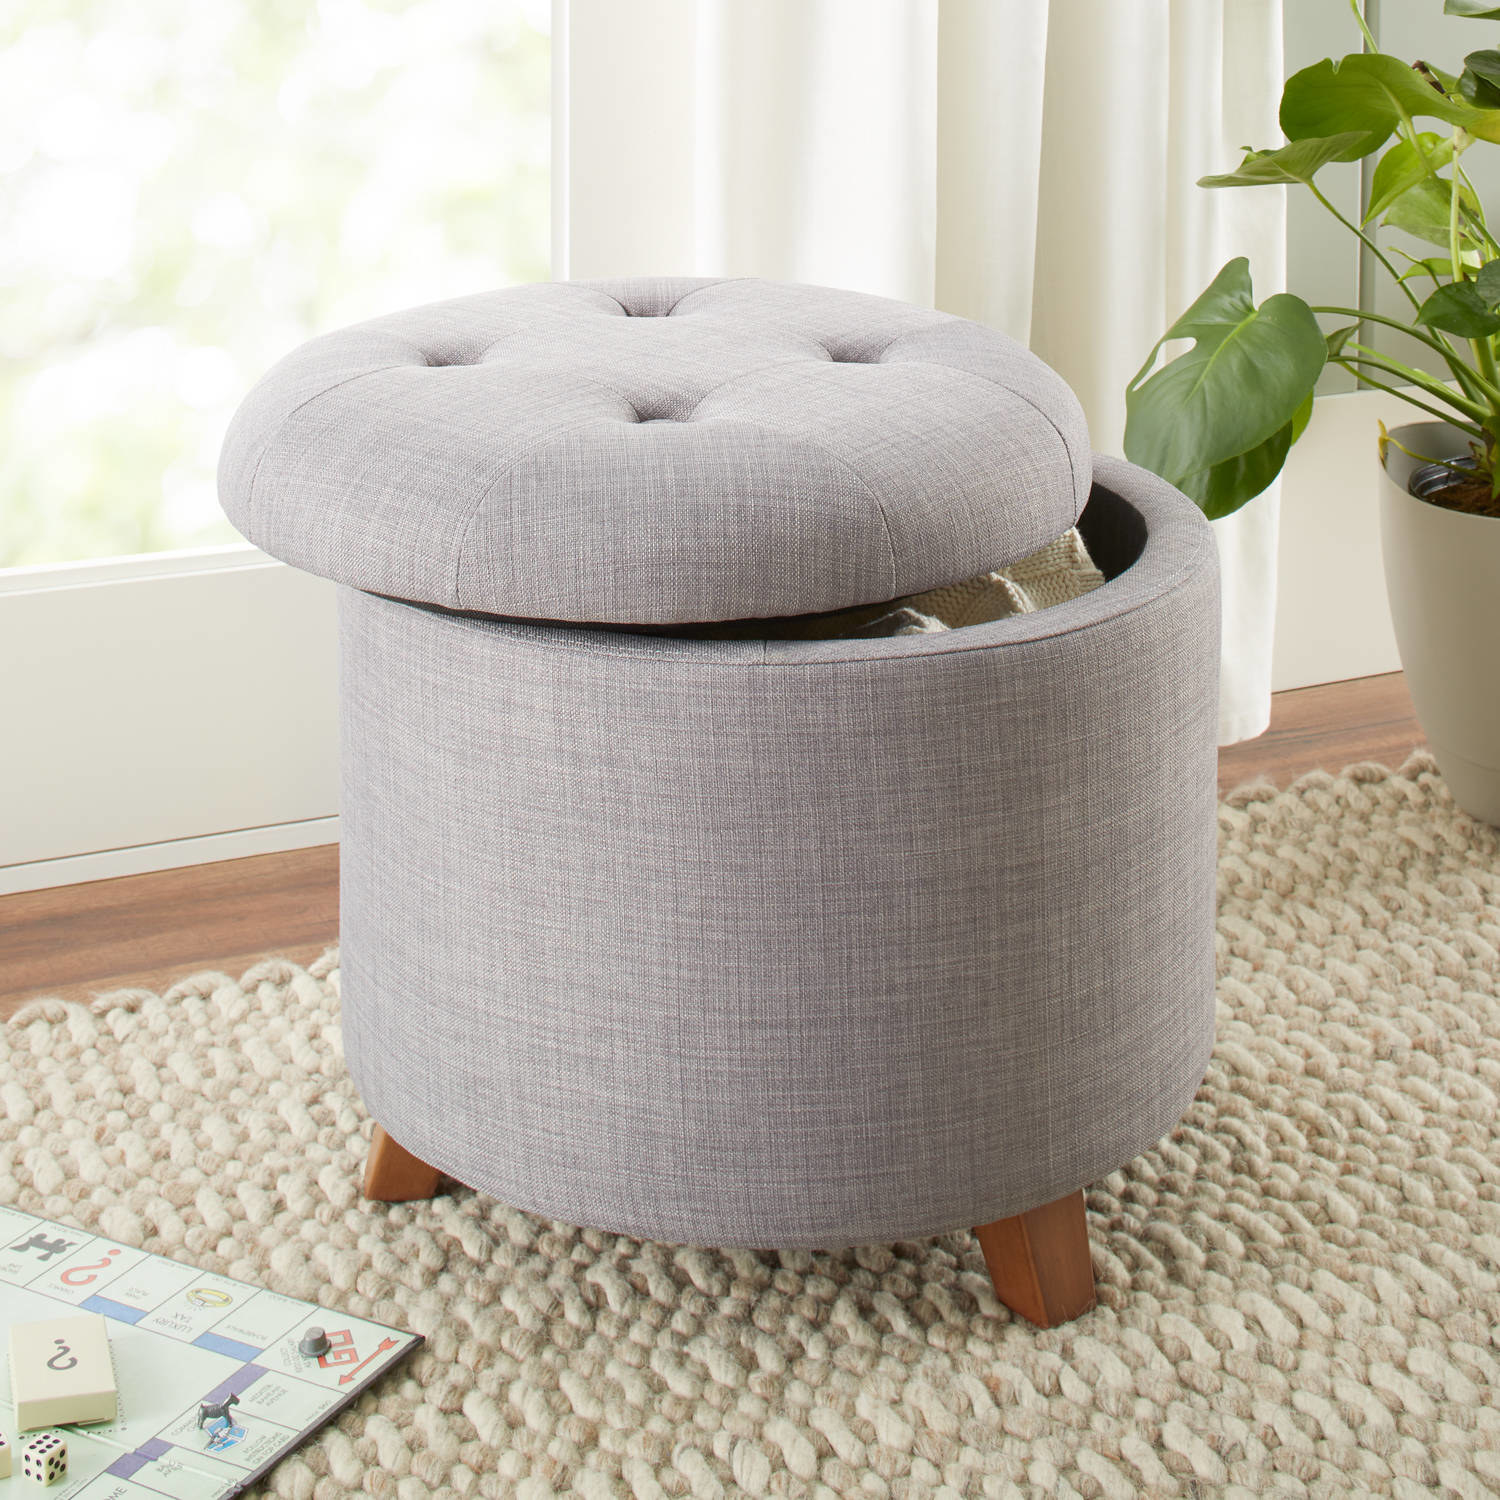 a grey circular tufted ottoman with brown legs